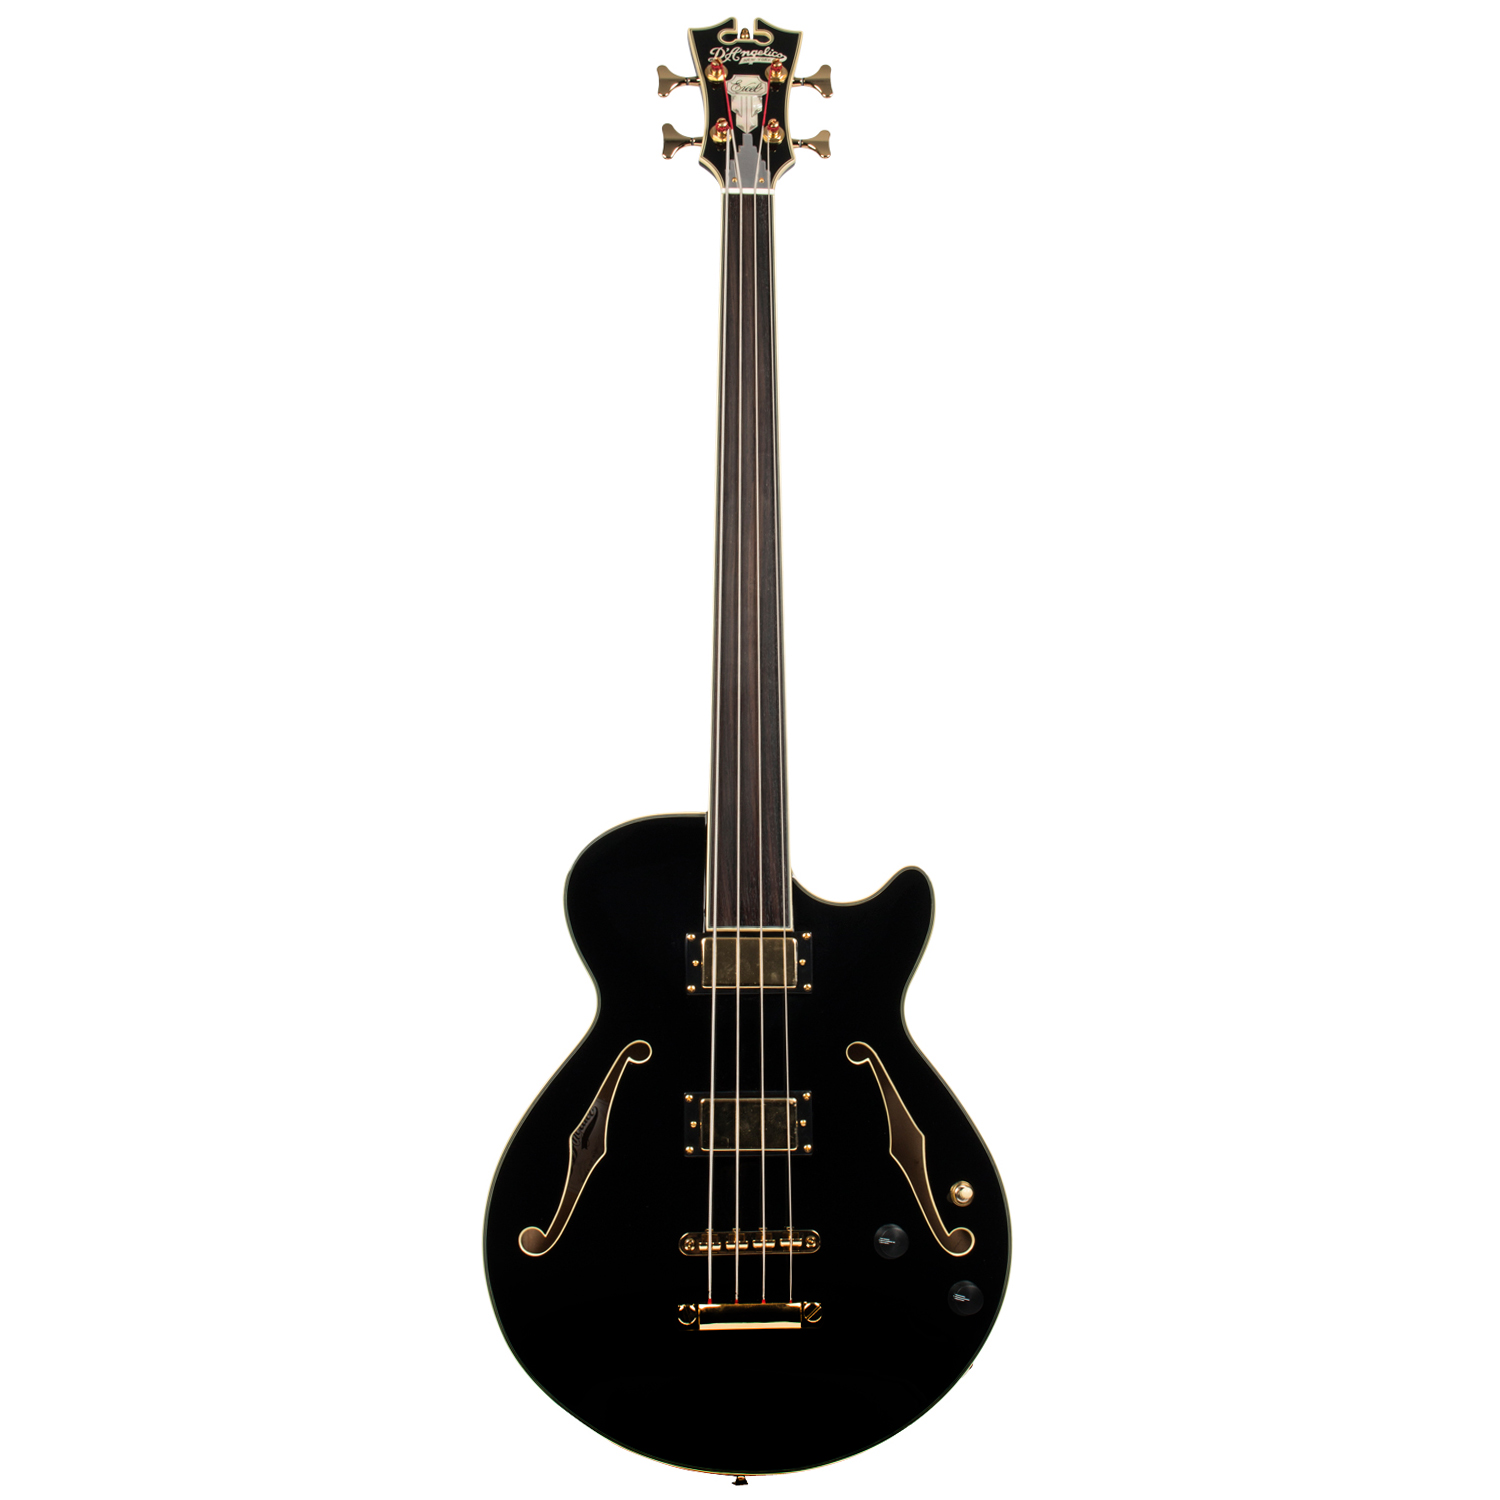 D'Angelico EX BASS FL BLK semi akustischer Bass, bundlos